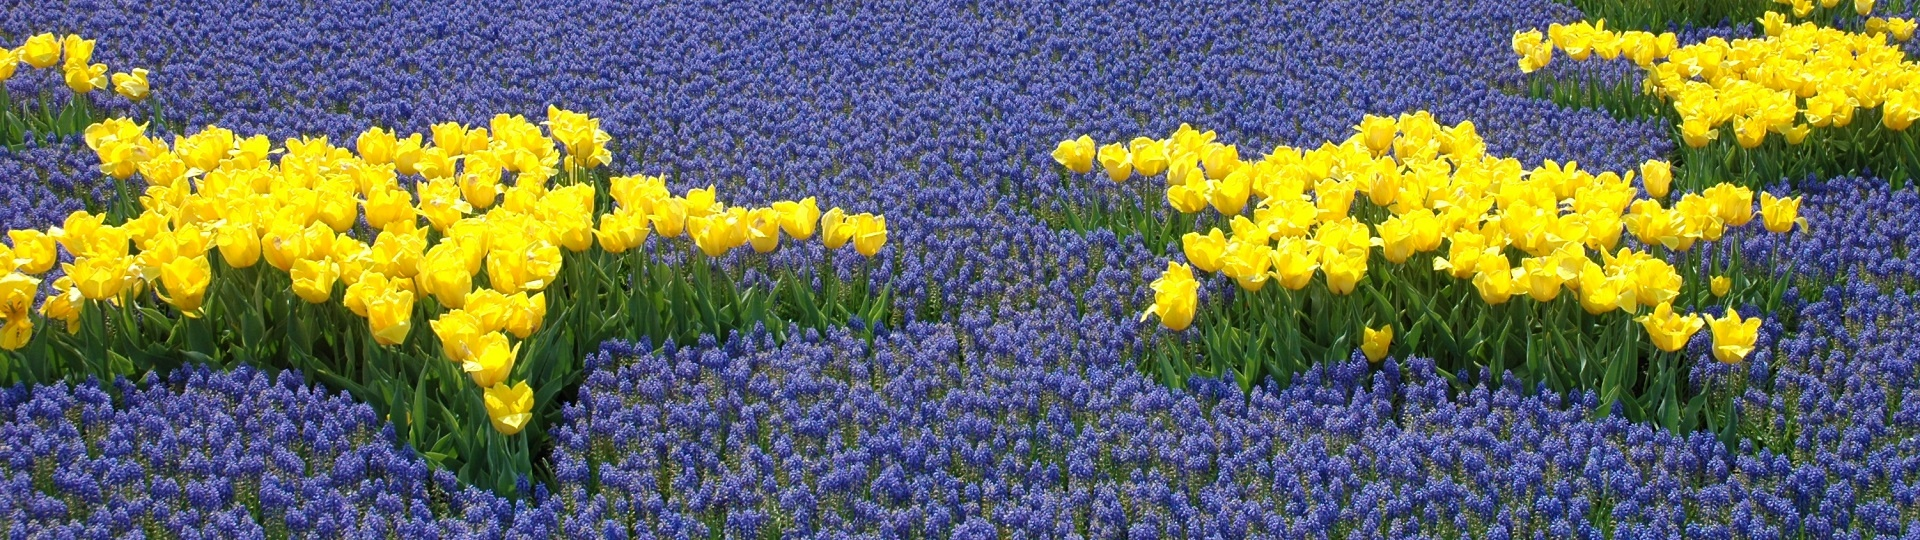 EU_Flowers_Rock_Cohen_1920x540.jpg